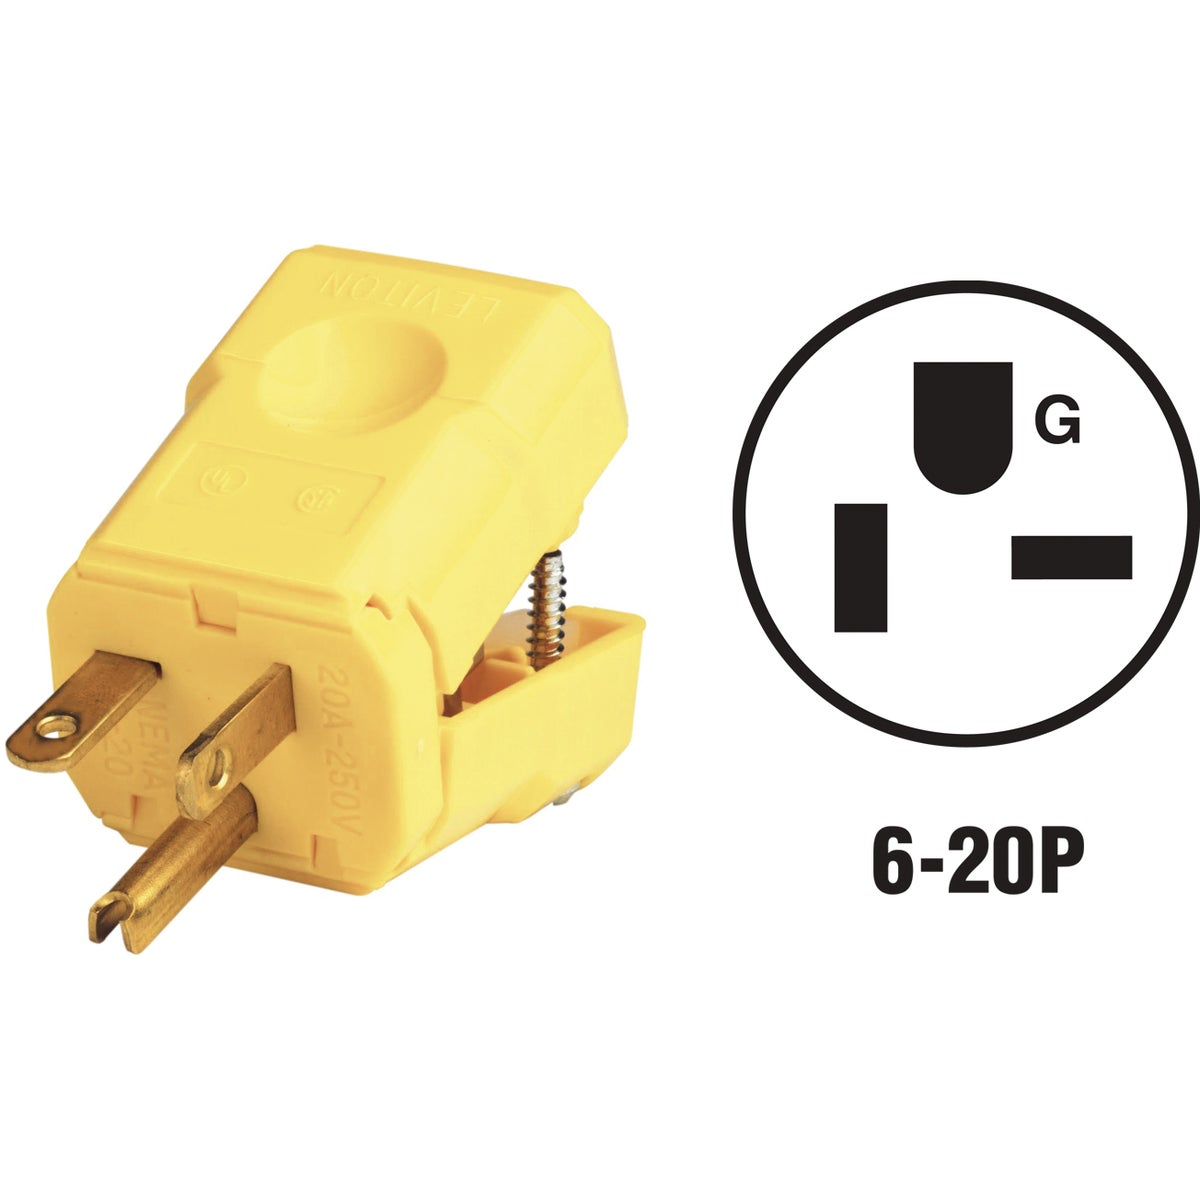 20A YEL GRND CORD PLUG - 0815456VY by Leviton Mfg Co